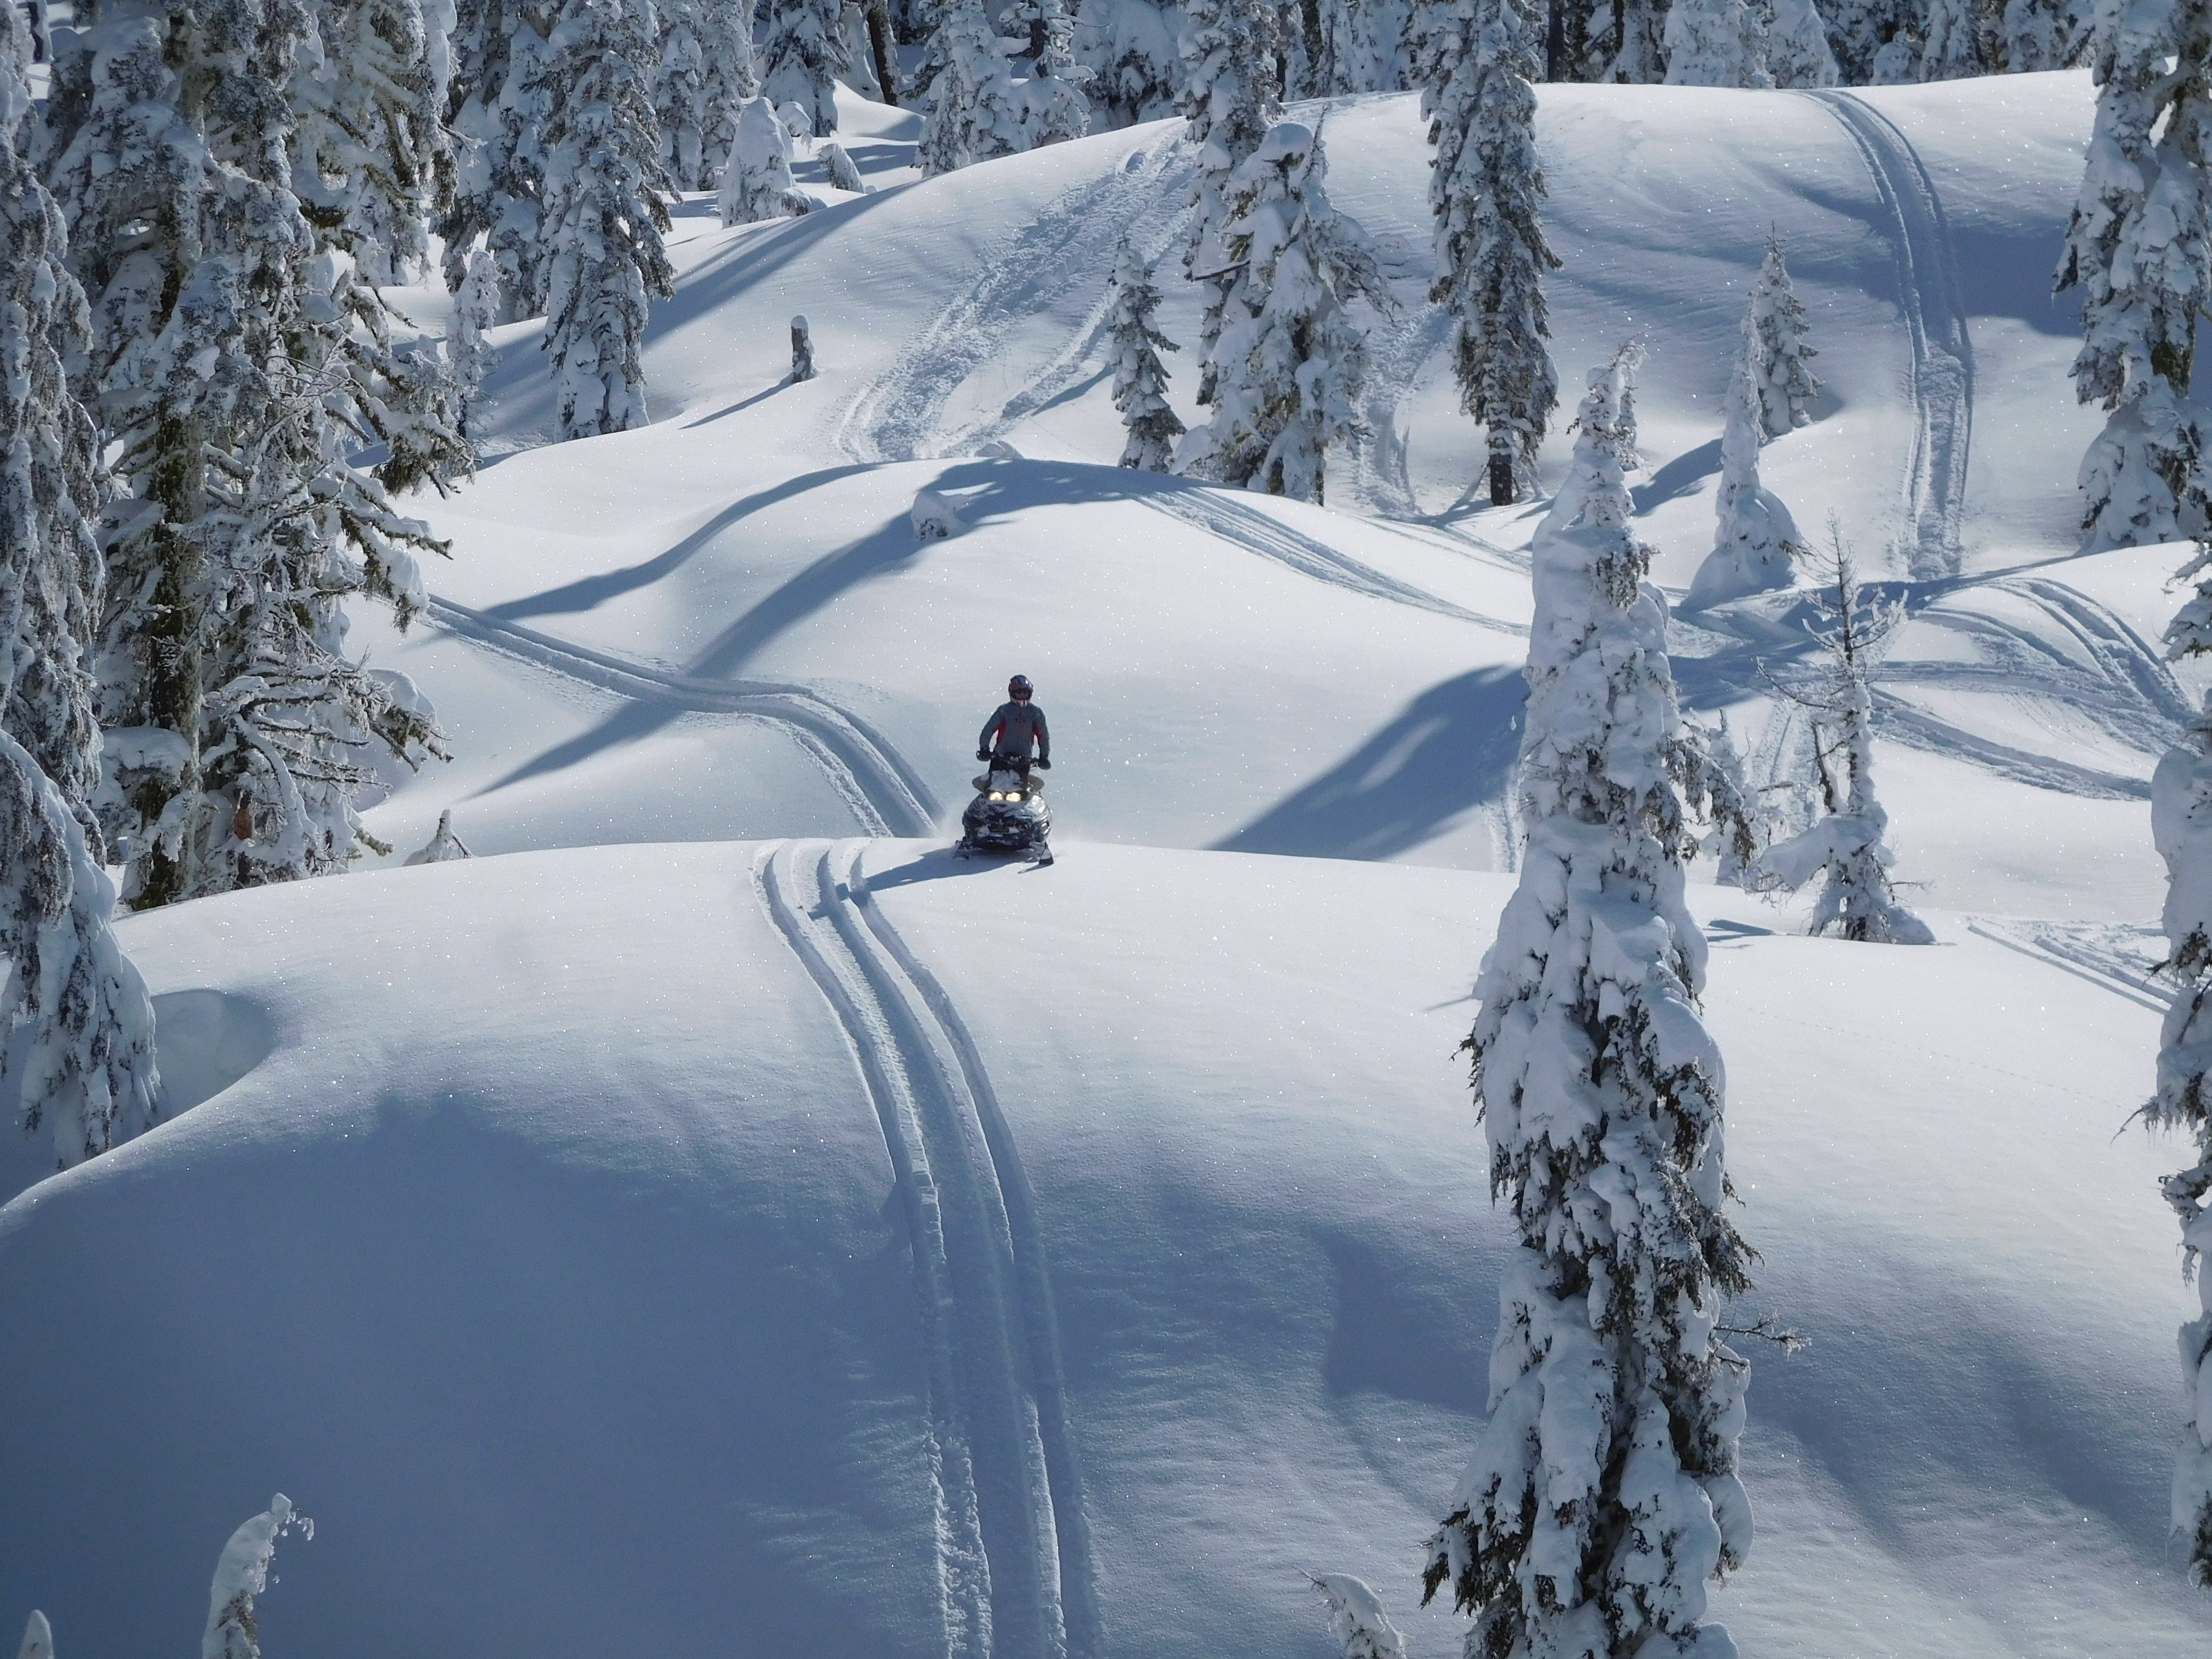 Person Riding Snowmobile Near Green Trees Covered With Snow at Daytime